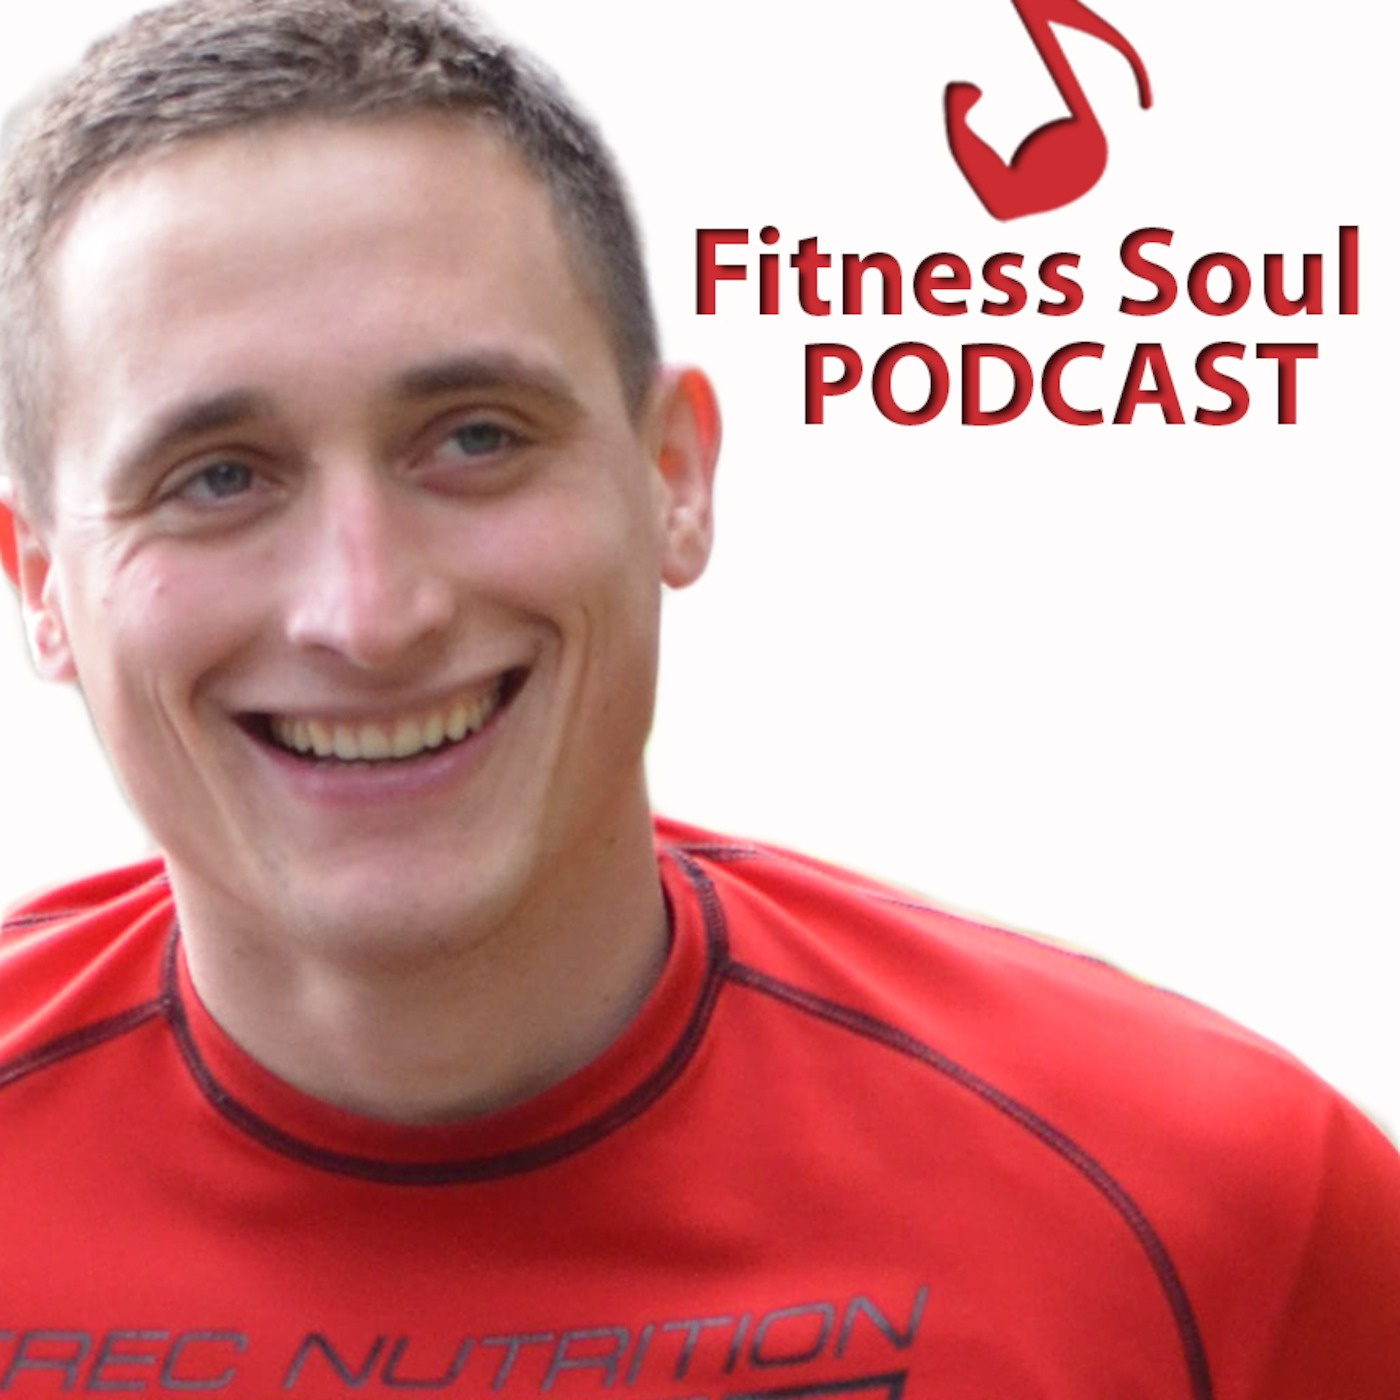 Fitness Soul's Podcast